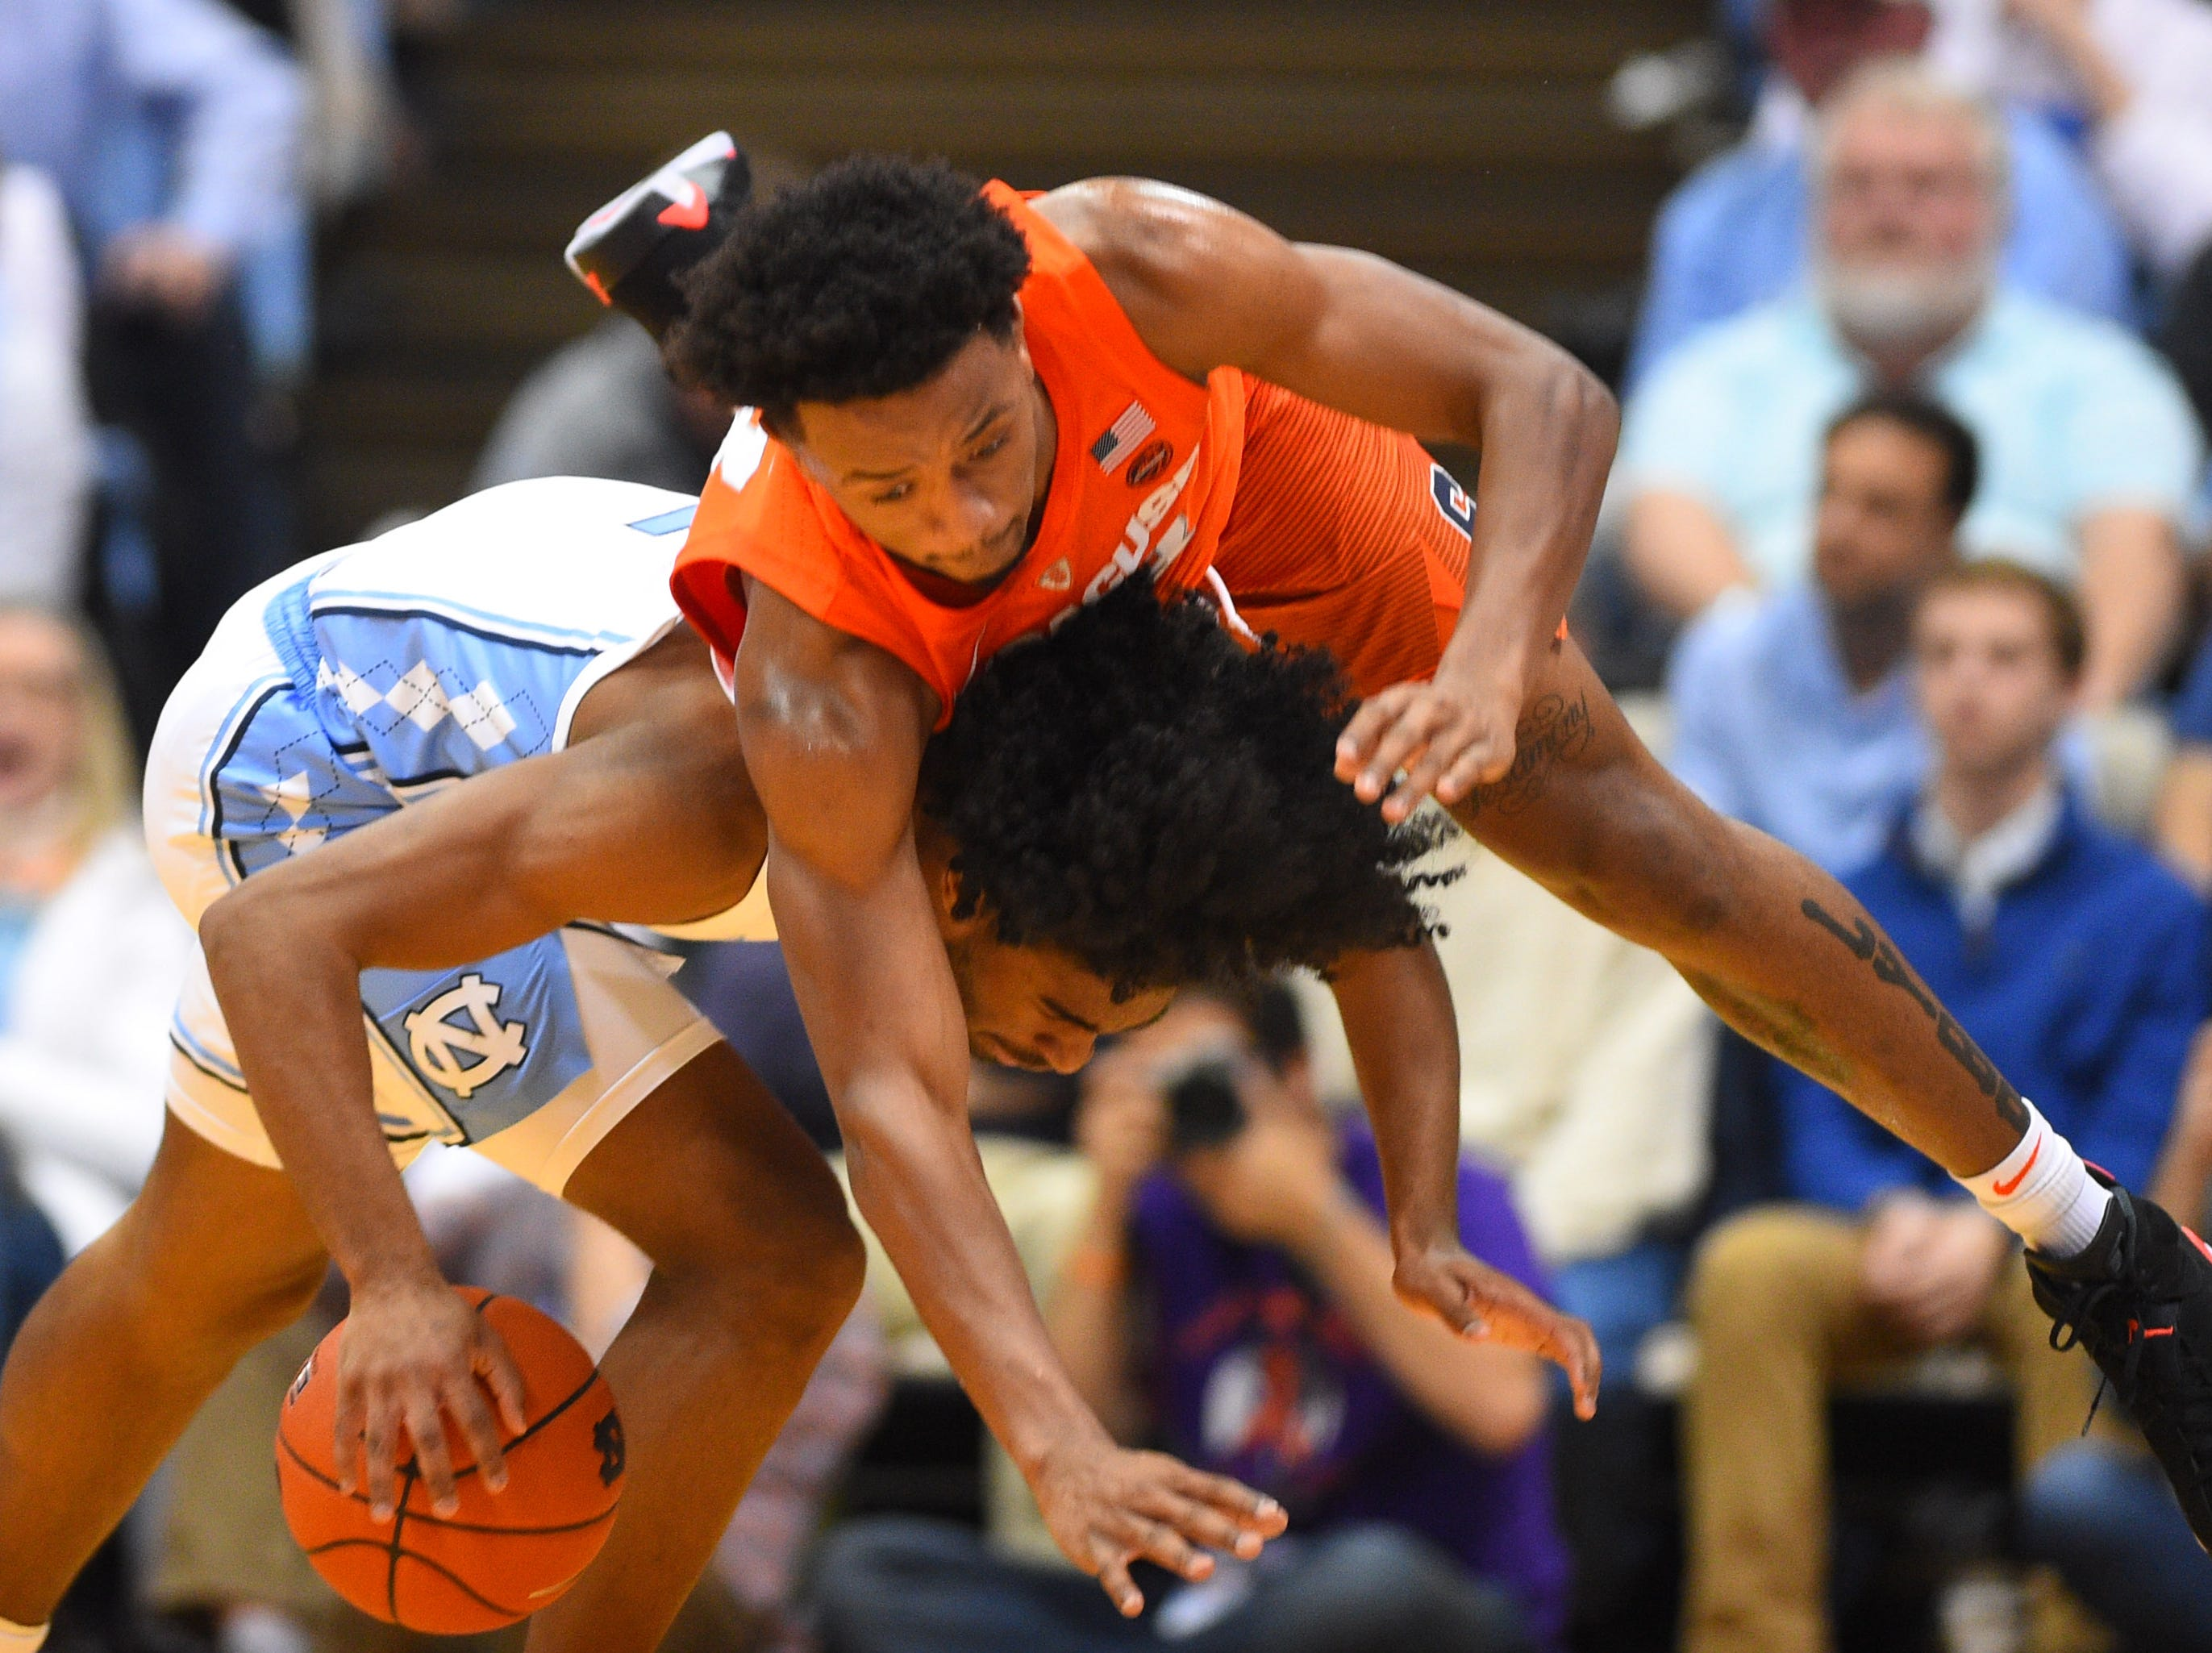 Feb. 26: Syracuse Orange forward Elijah Hughes (33) gets tangled up with North Carolina Tar Heels guard Coby White (2) in the first half at Dean E. Smith Center.